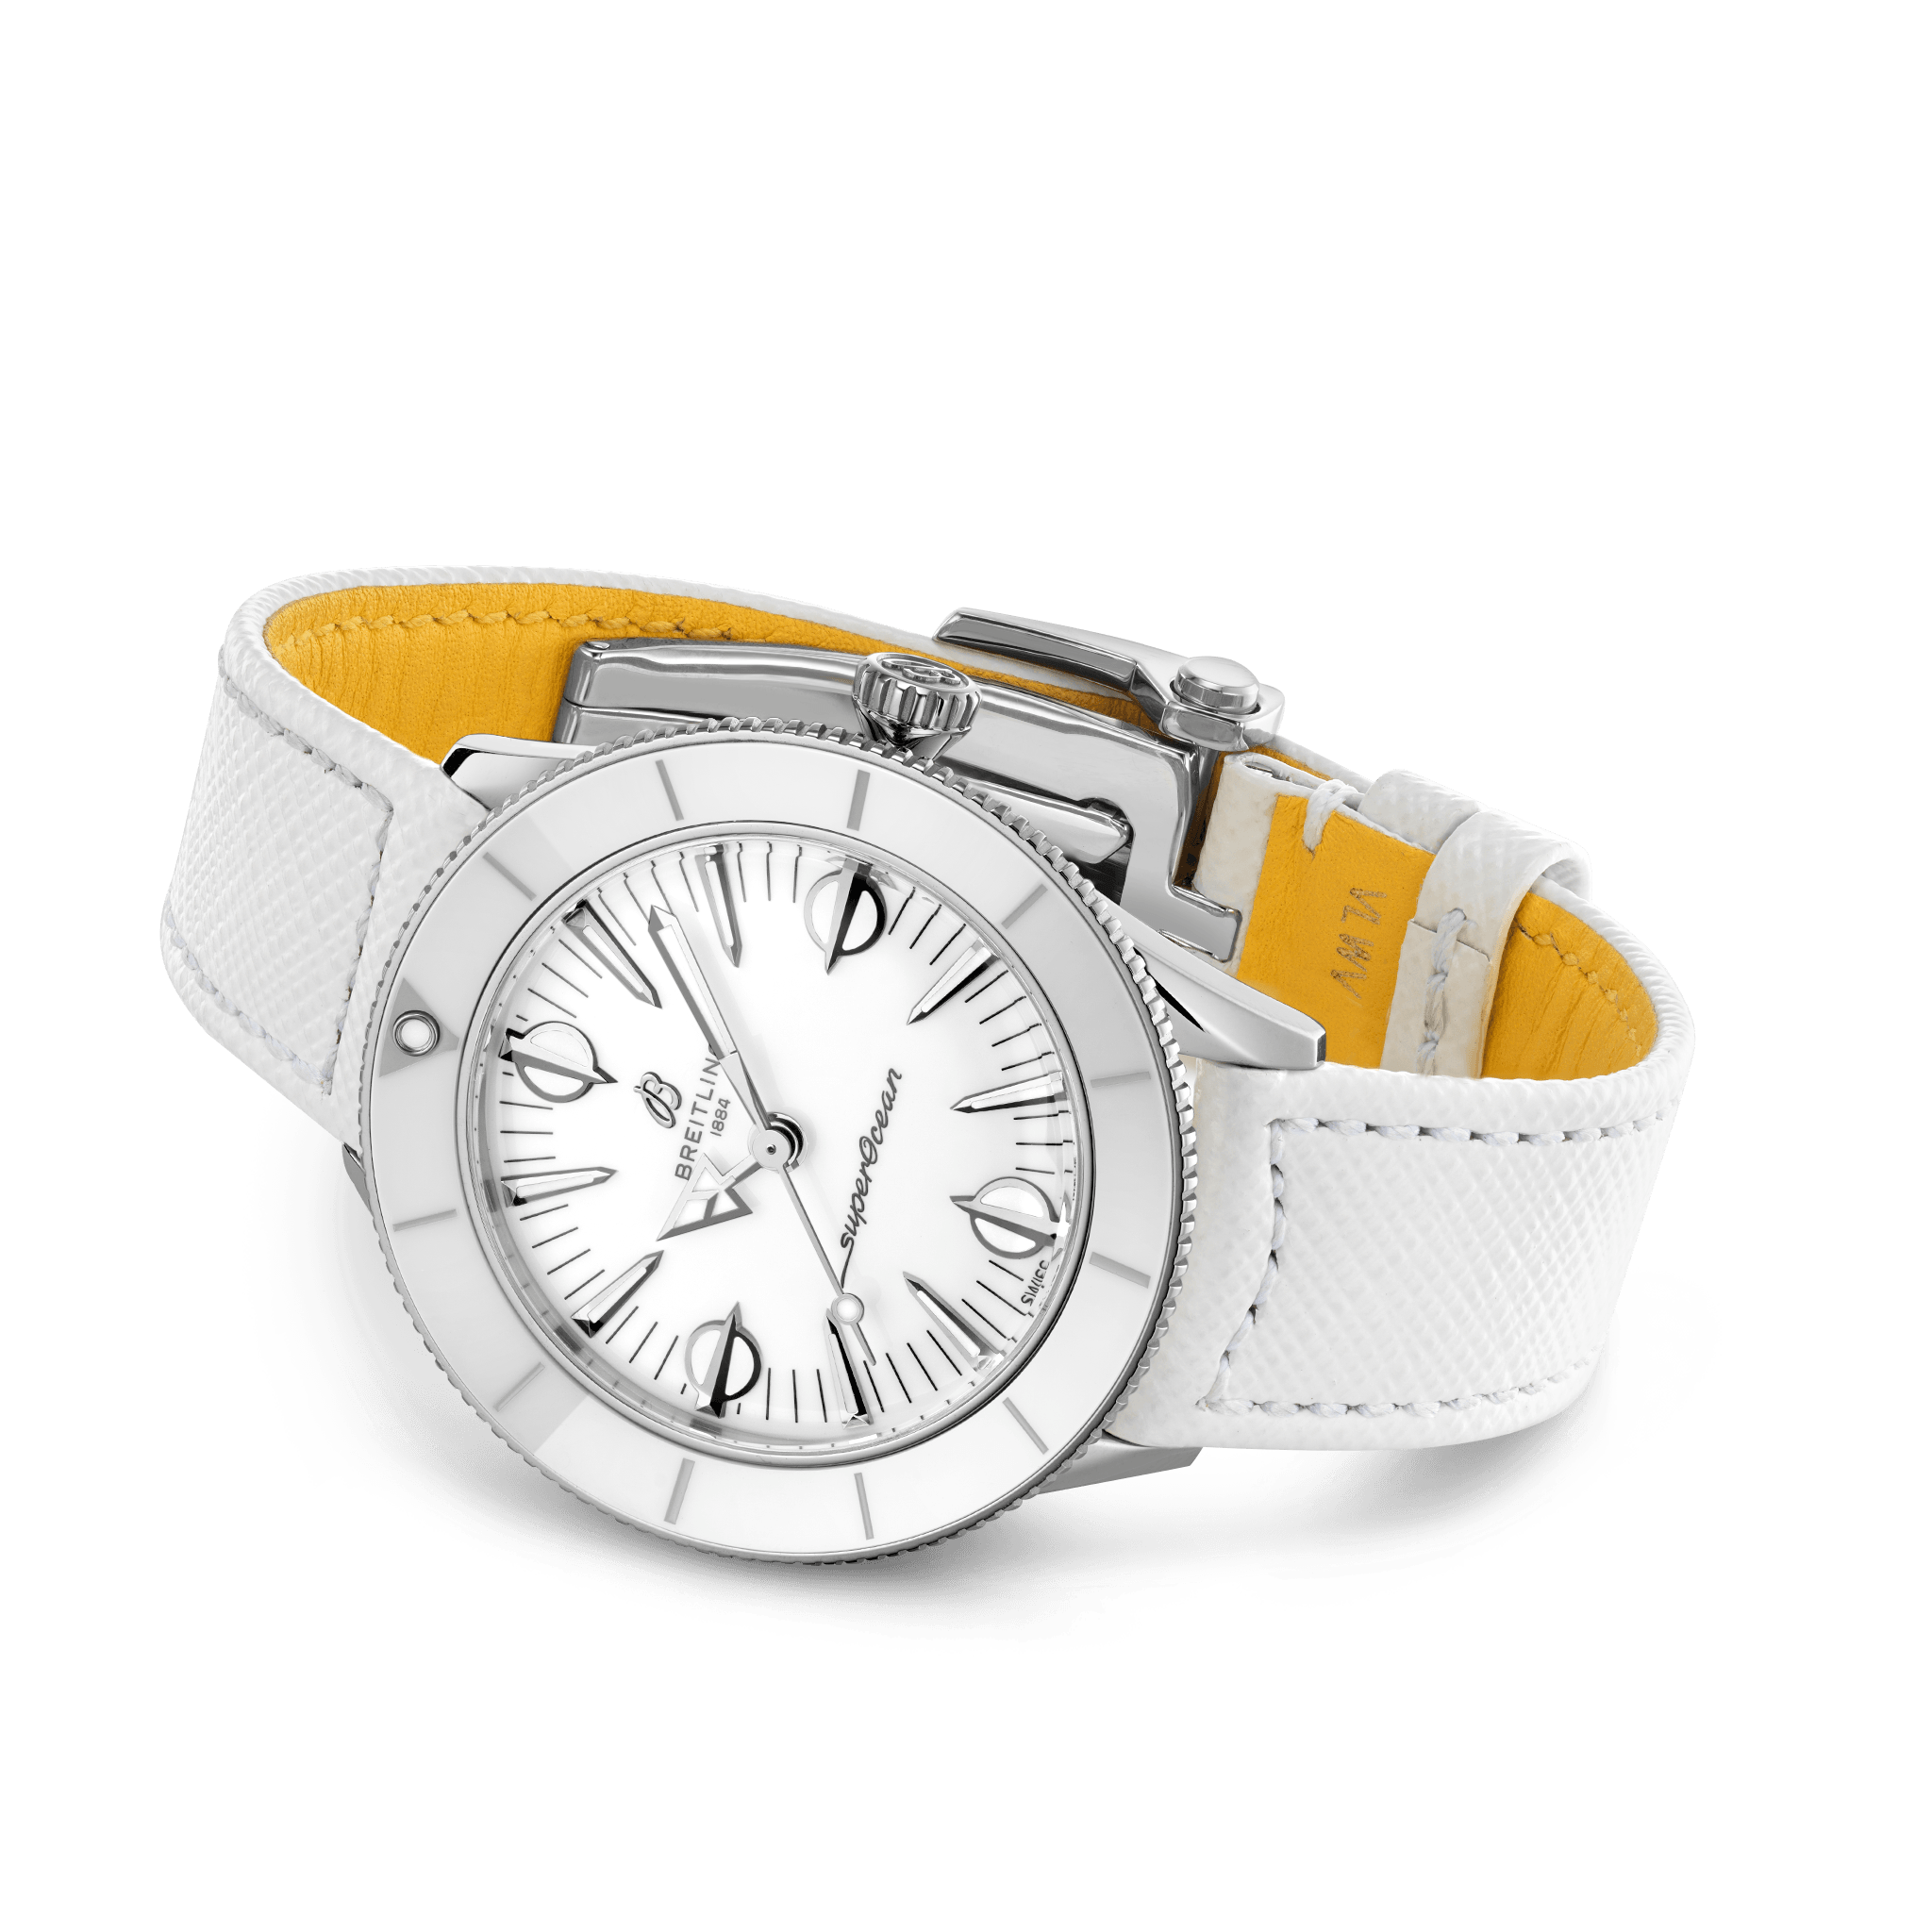 A10340A71A1X1 Breitling Superocean Heritage '57 Pastel Paradise